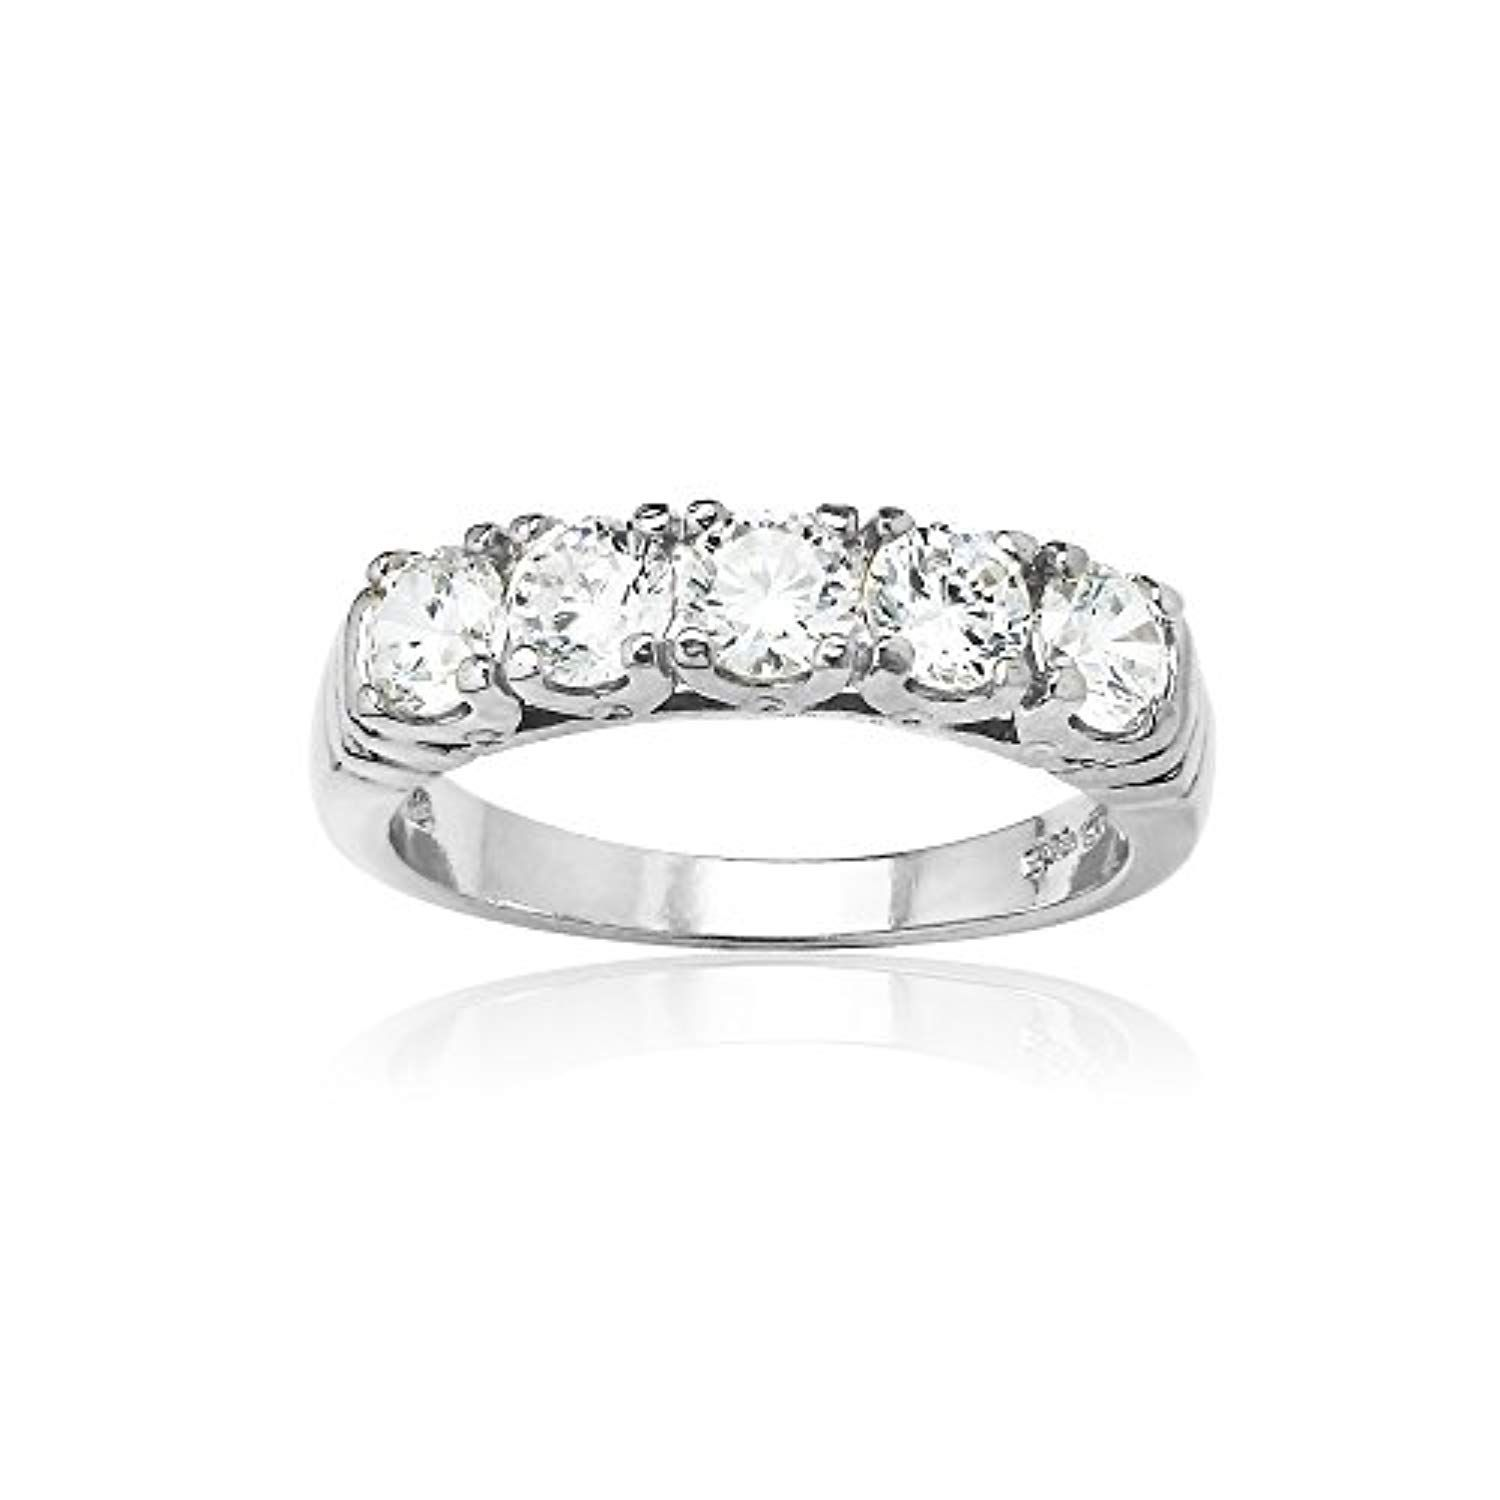 d1f7175face03 Sterling Silver Five Stone Eternity Ring created with Swarovski ...